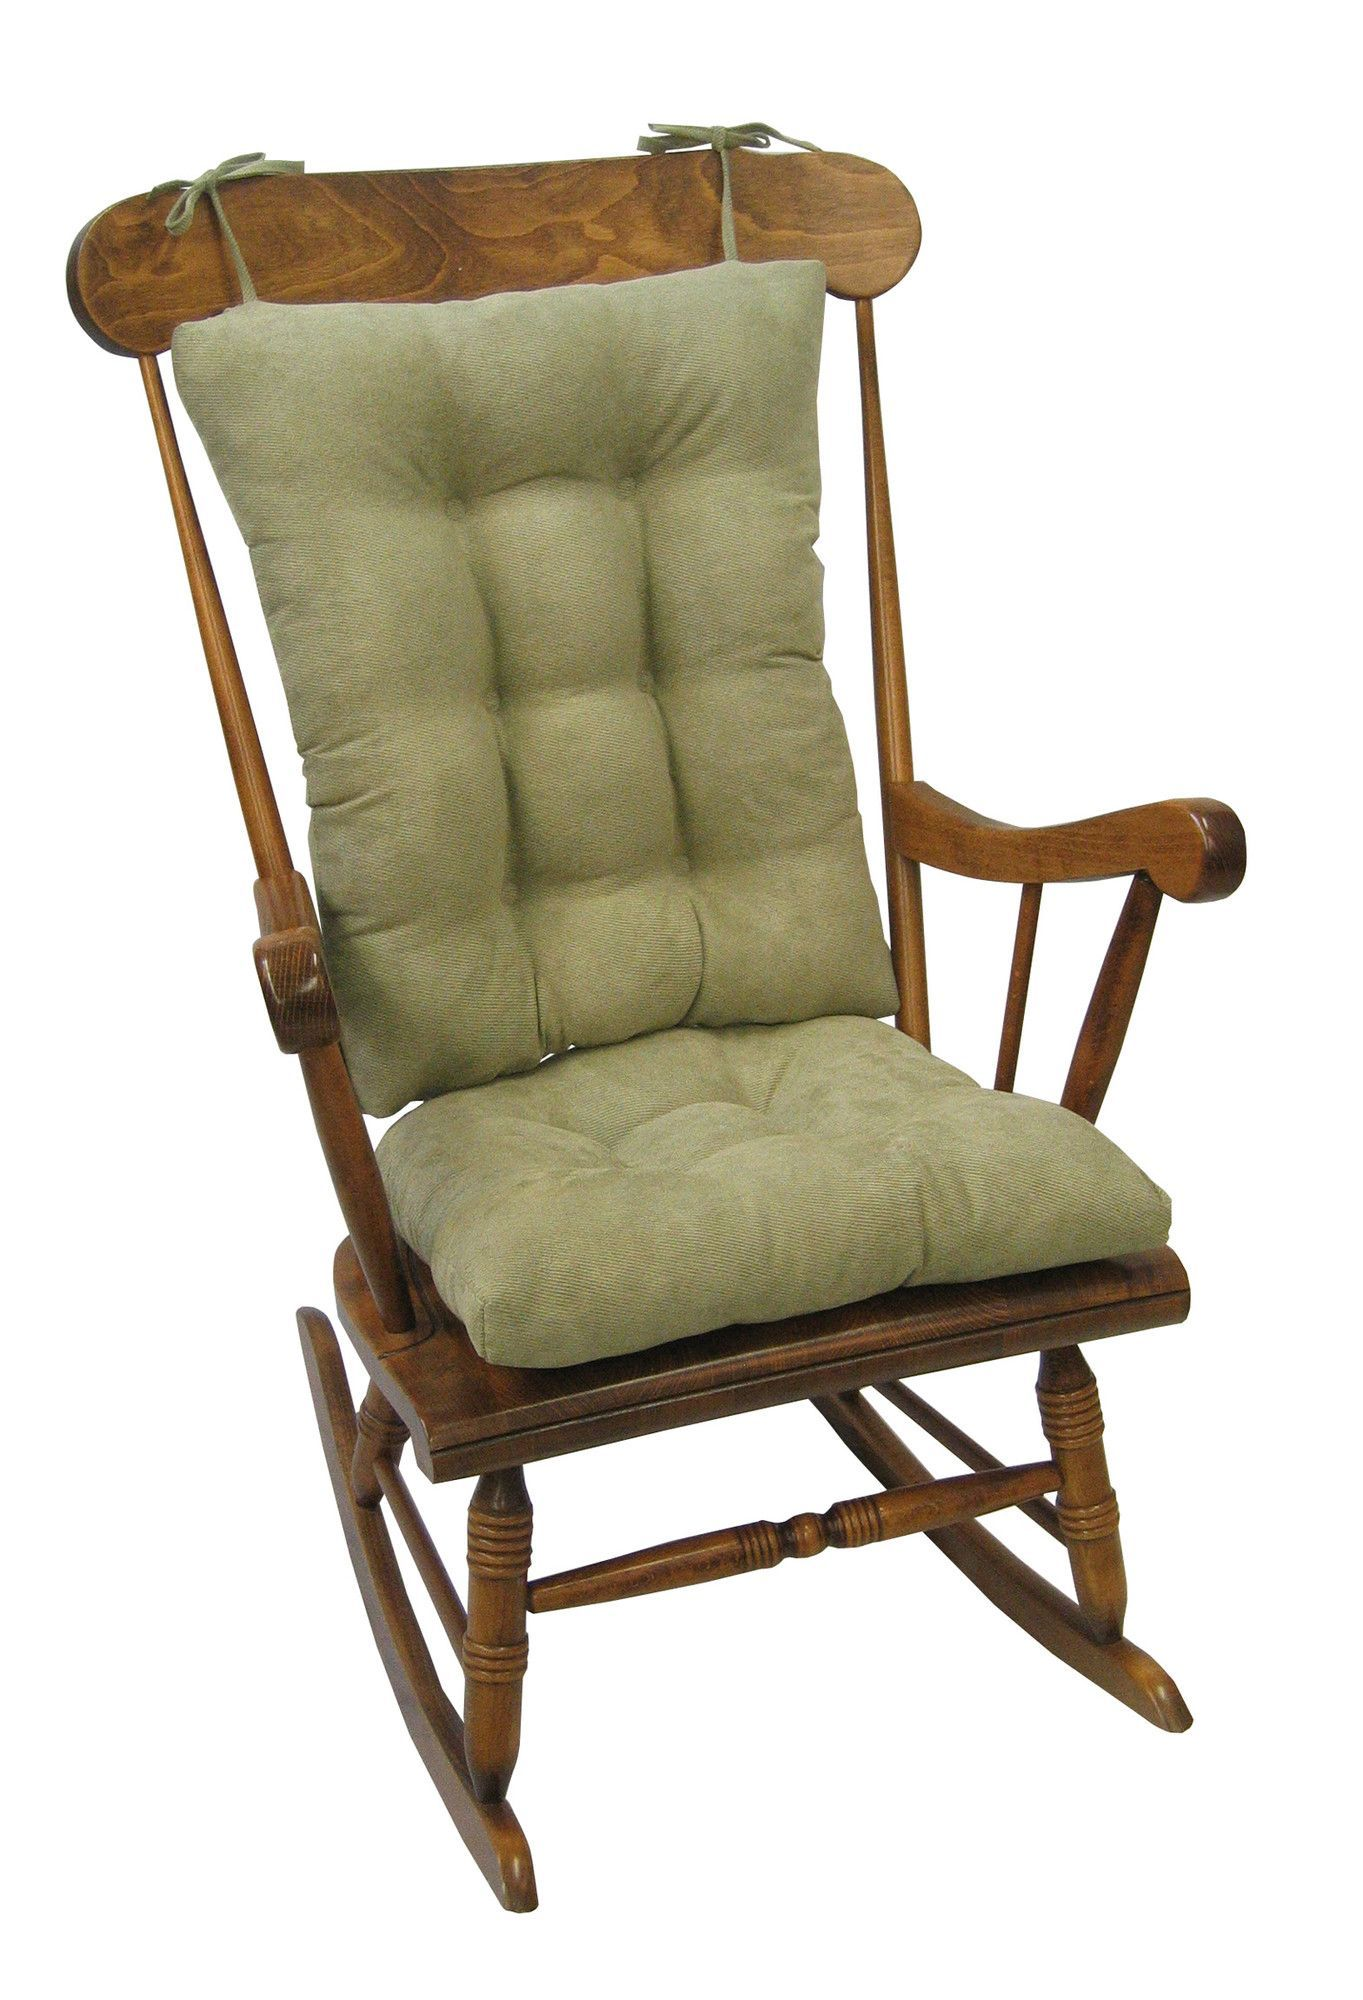 Park Art|My WordPress Blog_Wooden Rocking Chair With Cushions